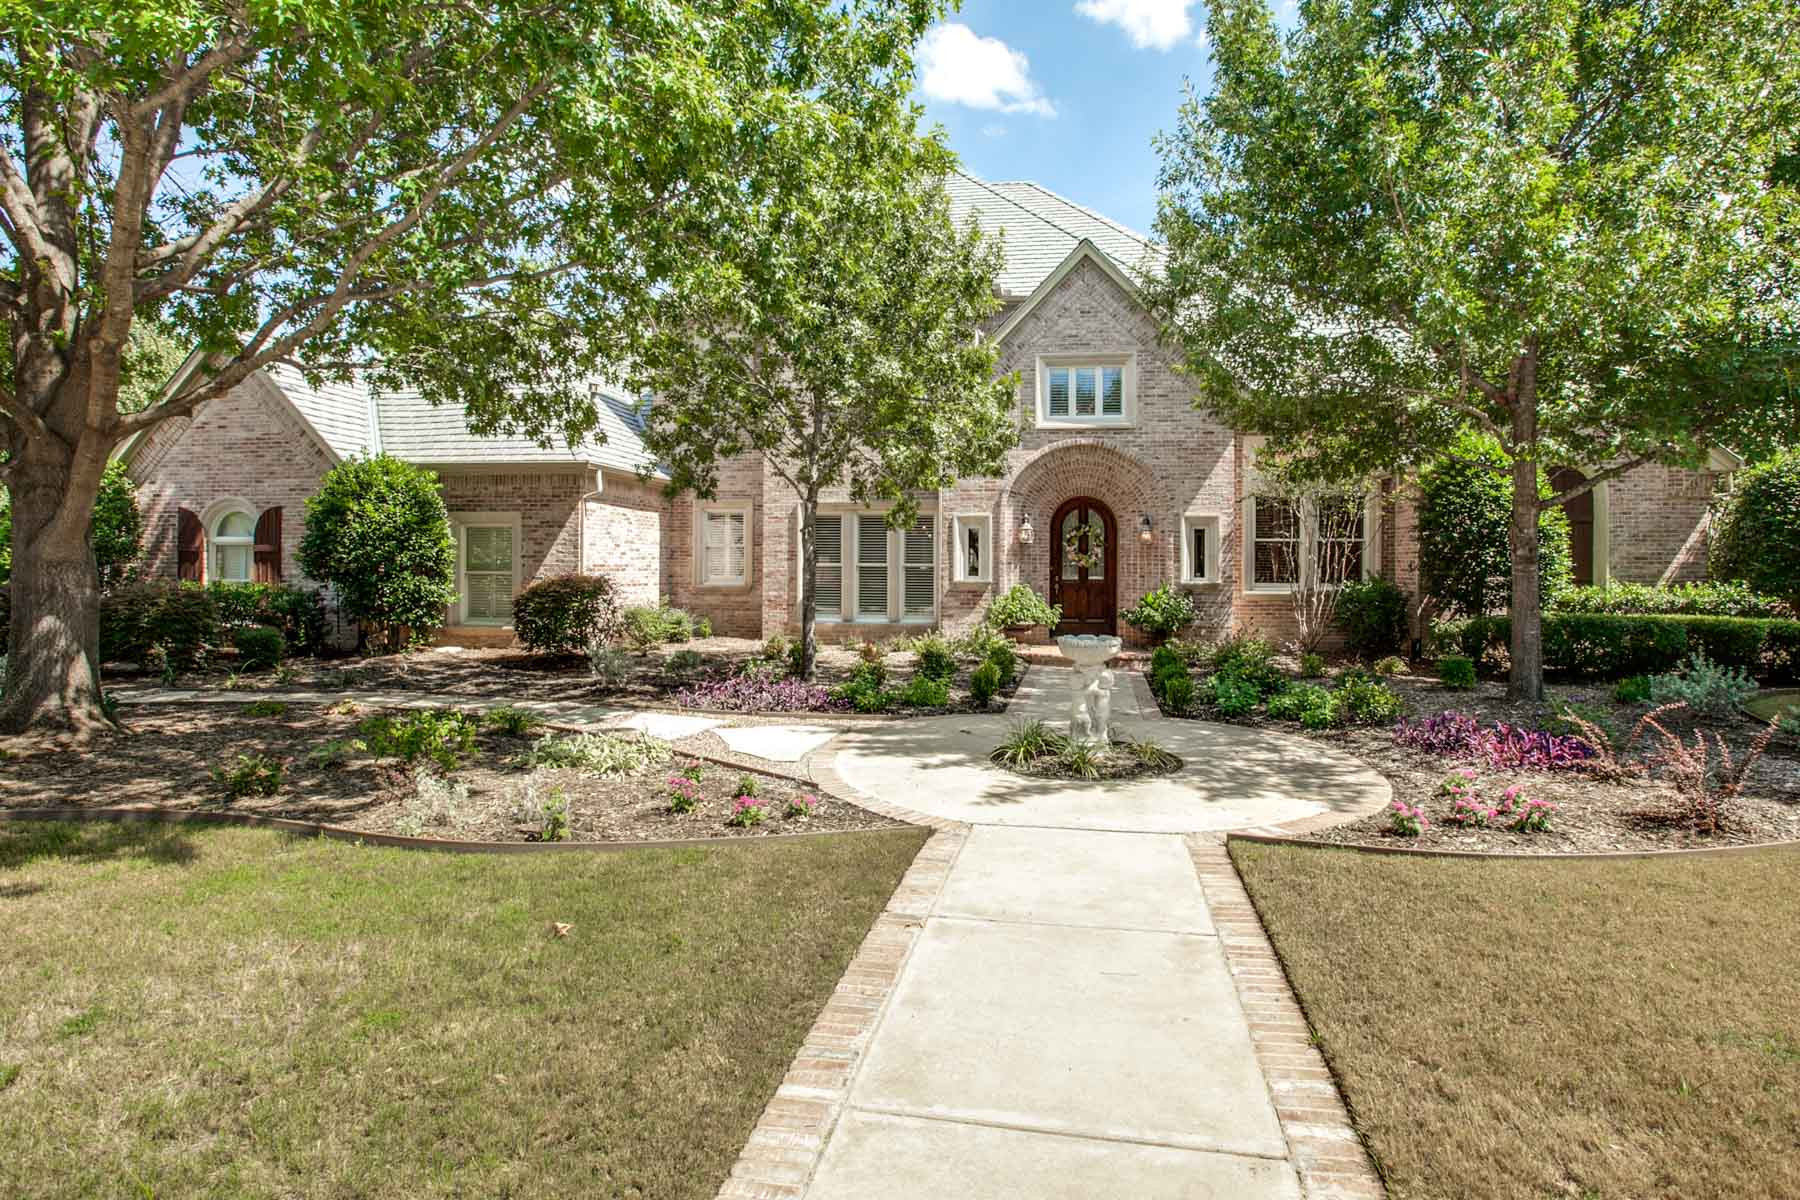 Tek Ailelik Ev için Satış at Meticulously Maintained and Updated Home, Mira Vista 6650 Laurel Valley Dr. Fort Worth, Teksas, 76132 Amerika Birleşik Devletleri